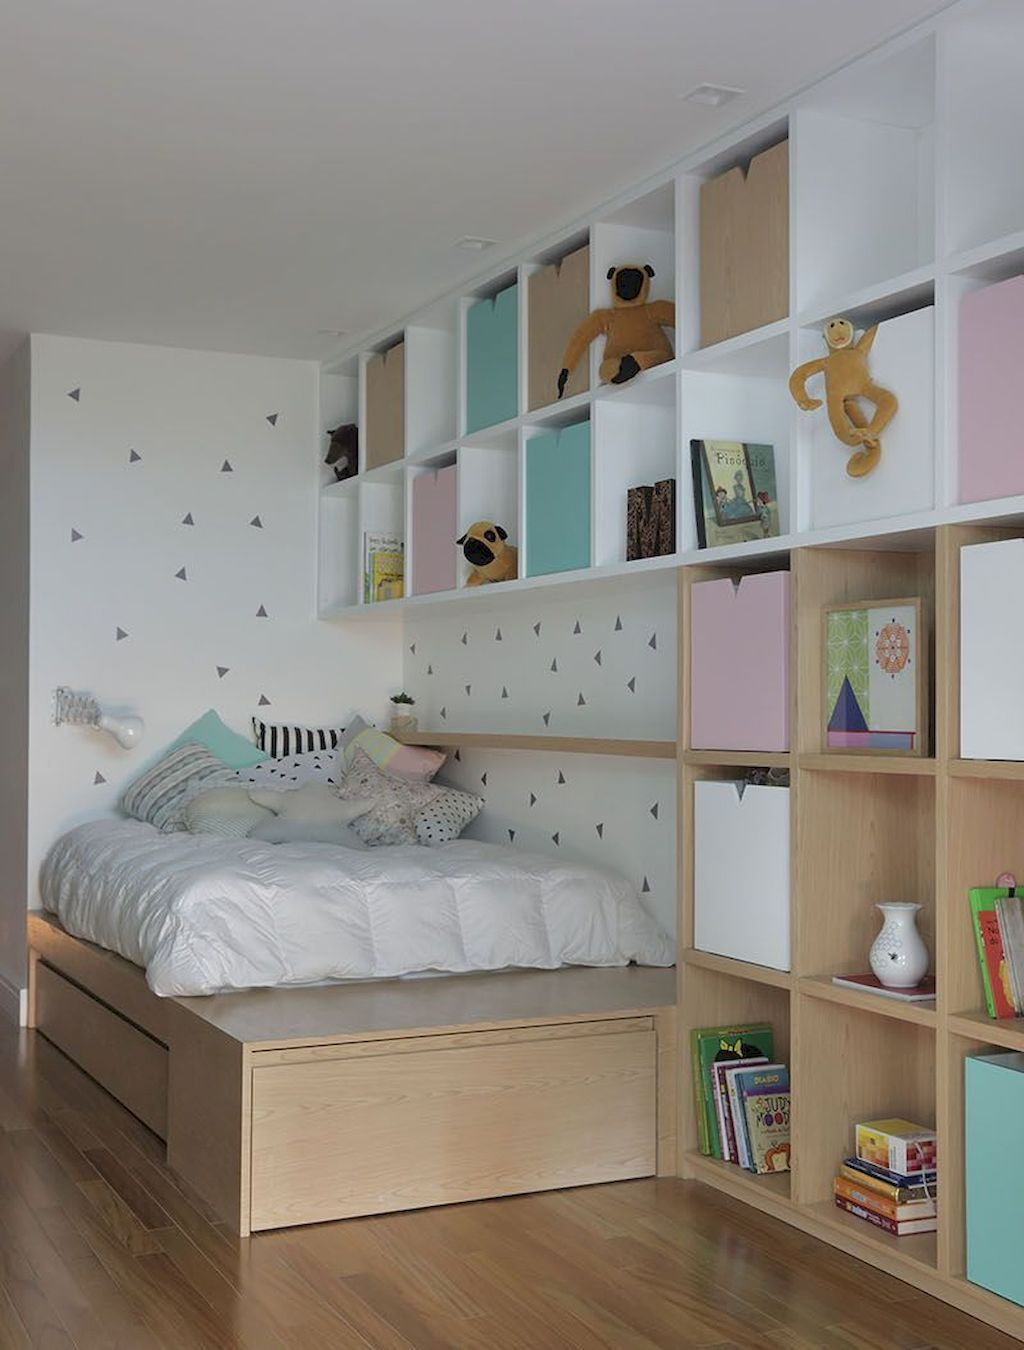 Tiny Box Room Ikea Stuva Loft Bed Making The Most Of Small Bedroom Space Great Under Bed Storage Kids Bedroom Space Box Room Bedroom Ideas Stuva Loft Bed